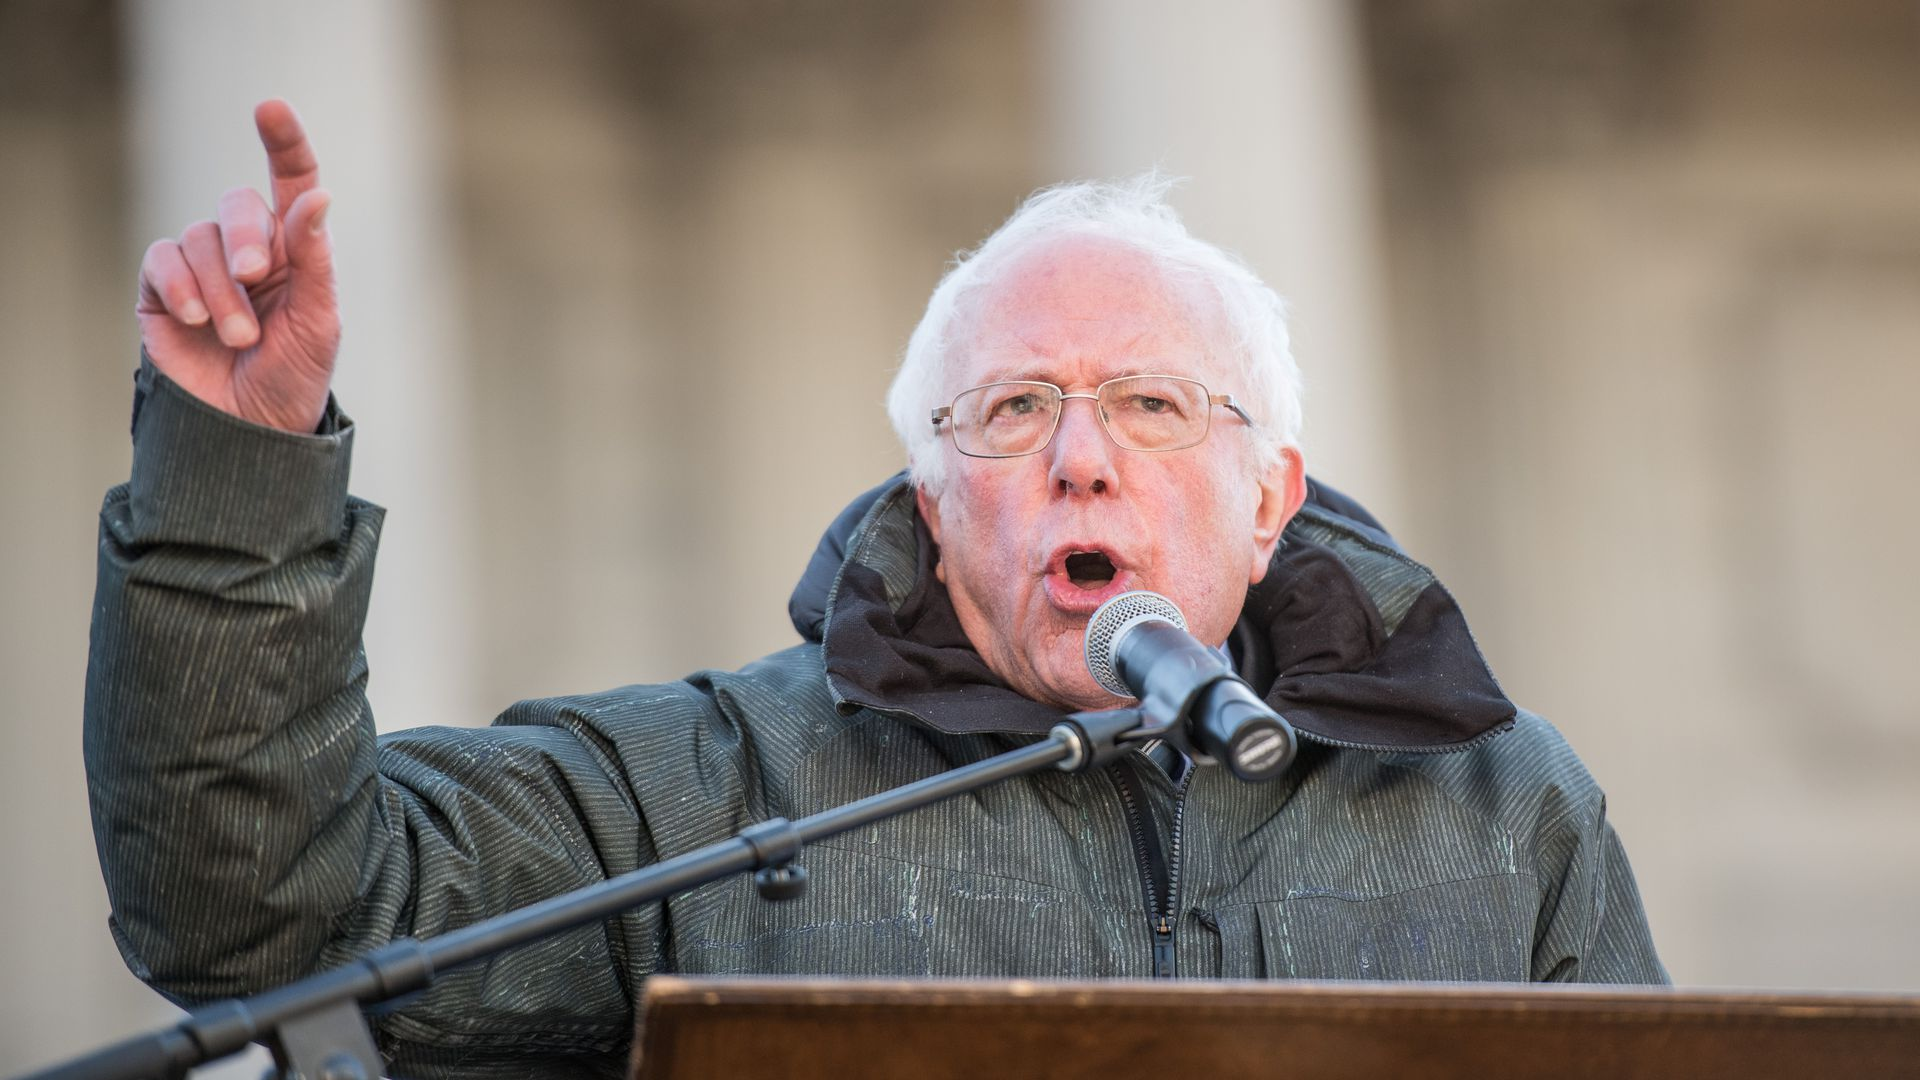 Bernie Sanders: Everything you need to know about the 2020 candidate